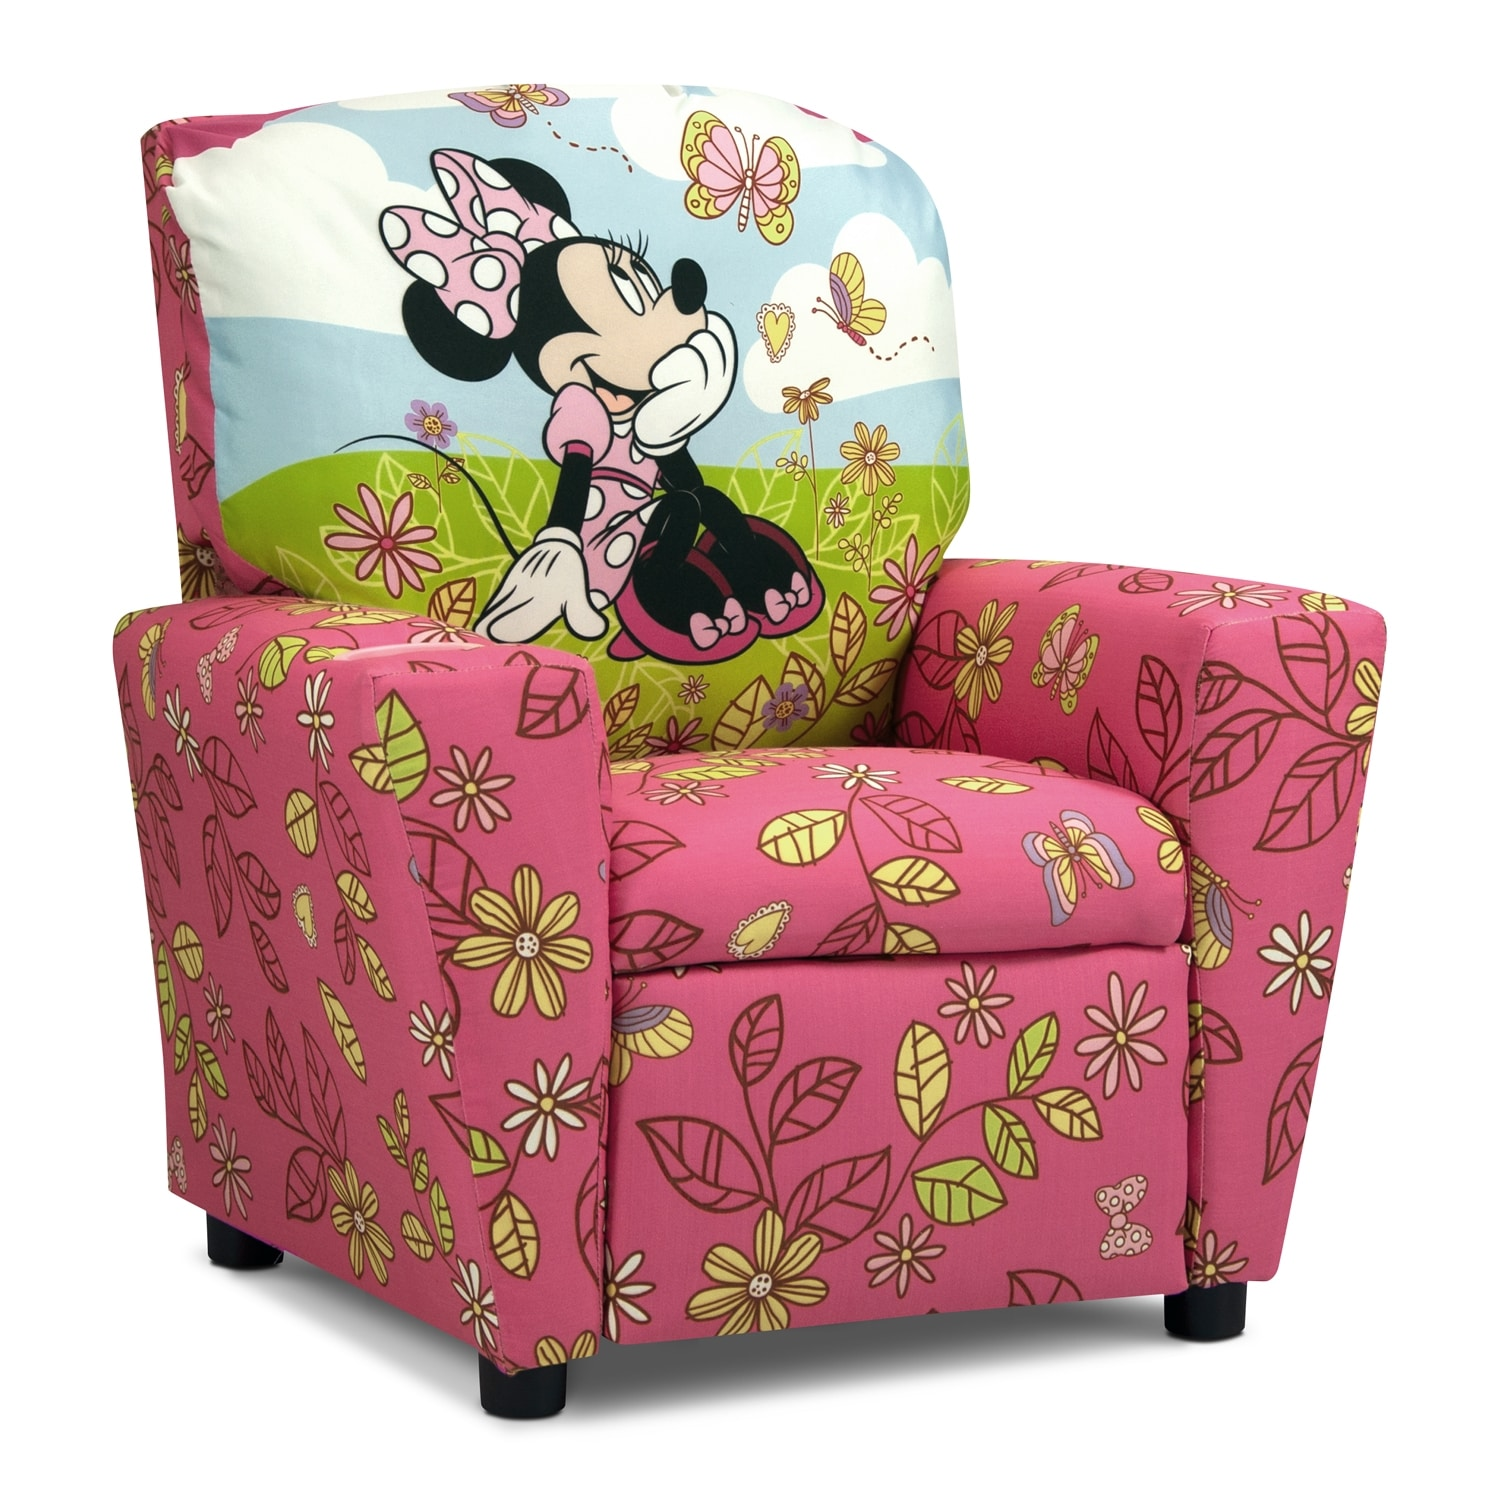 Minnie Mouse Child's Recliner - Pink